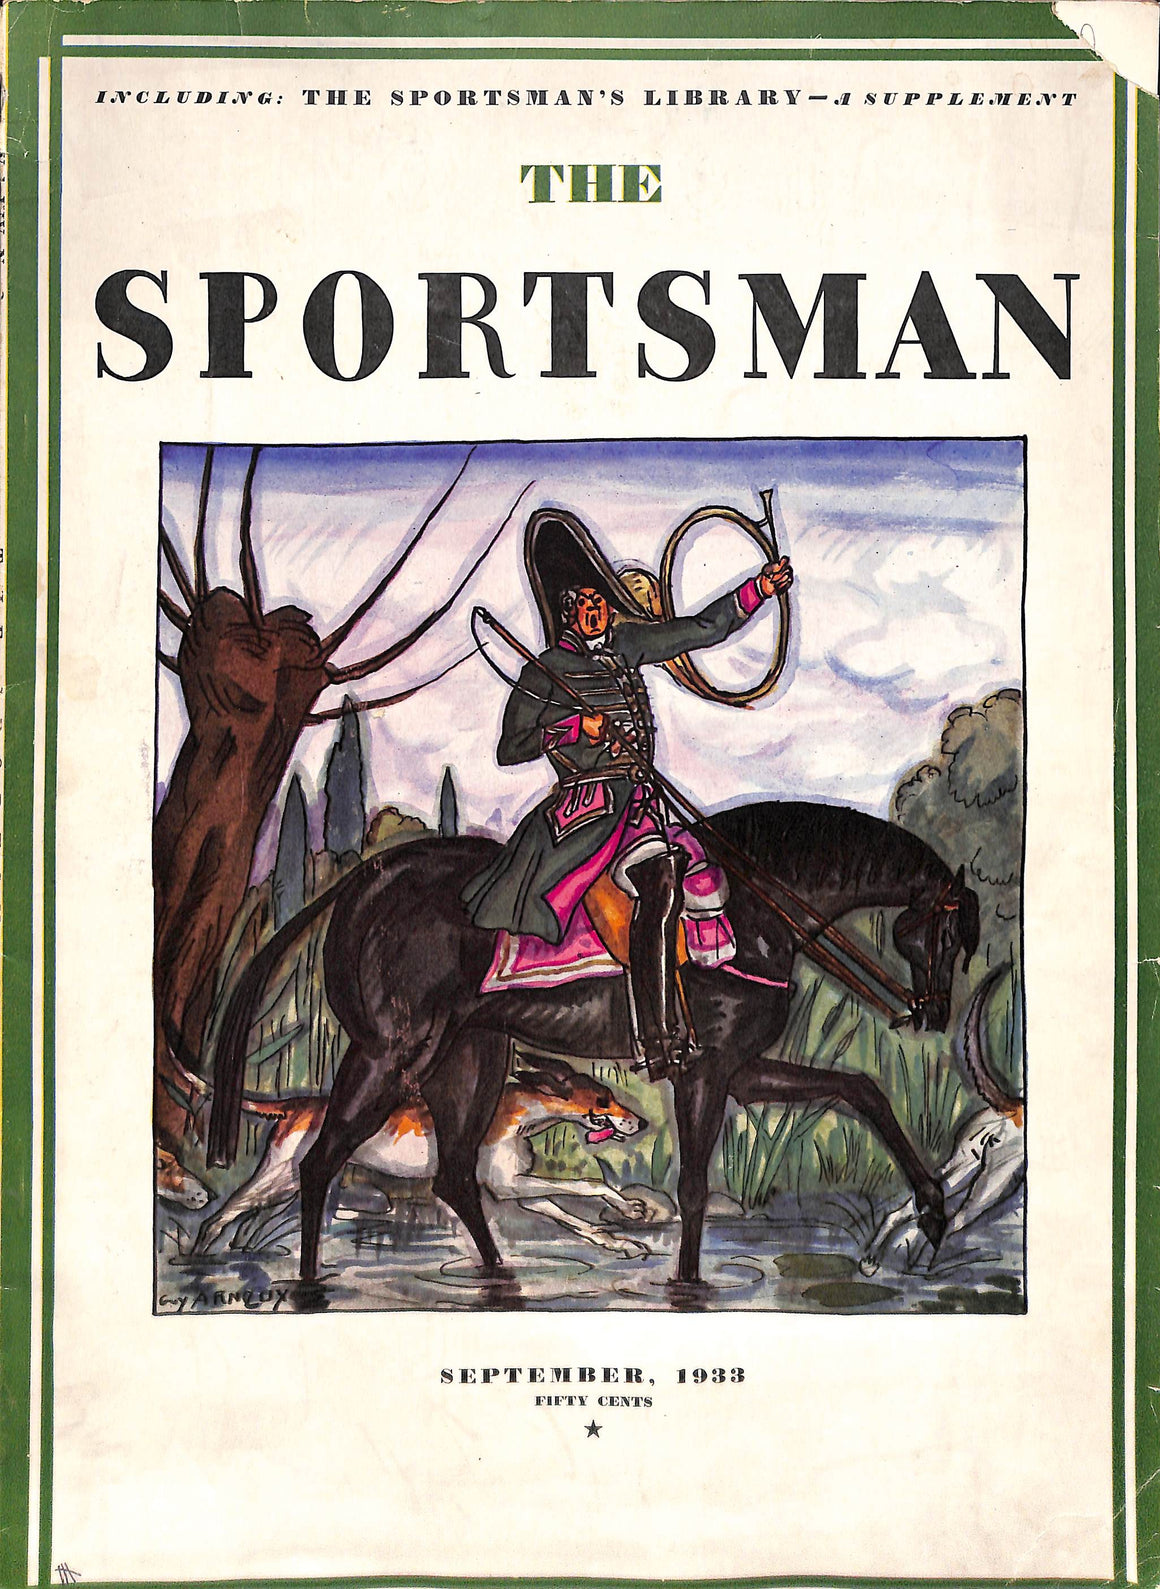 The Sportsman September 1933